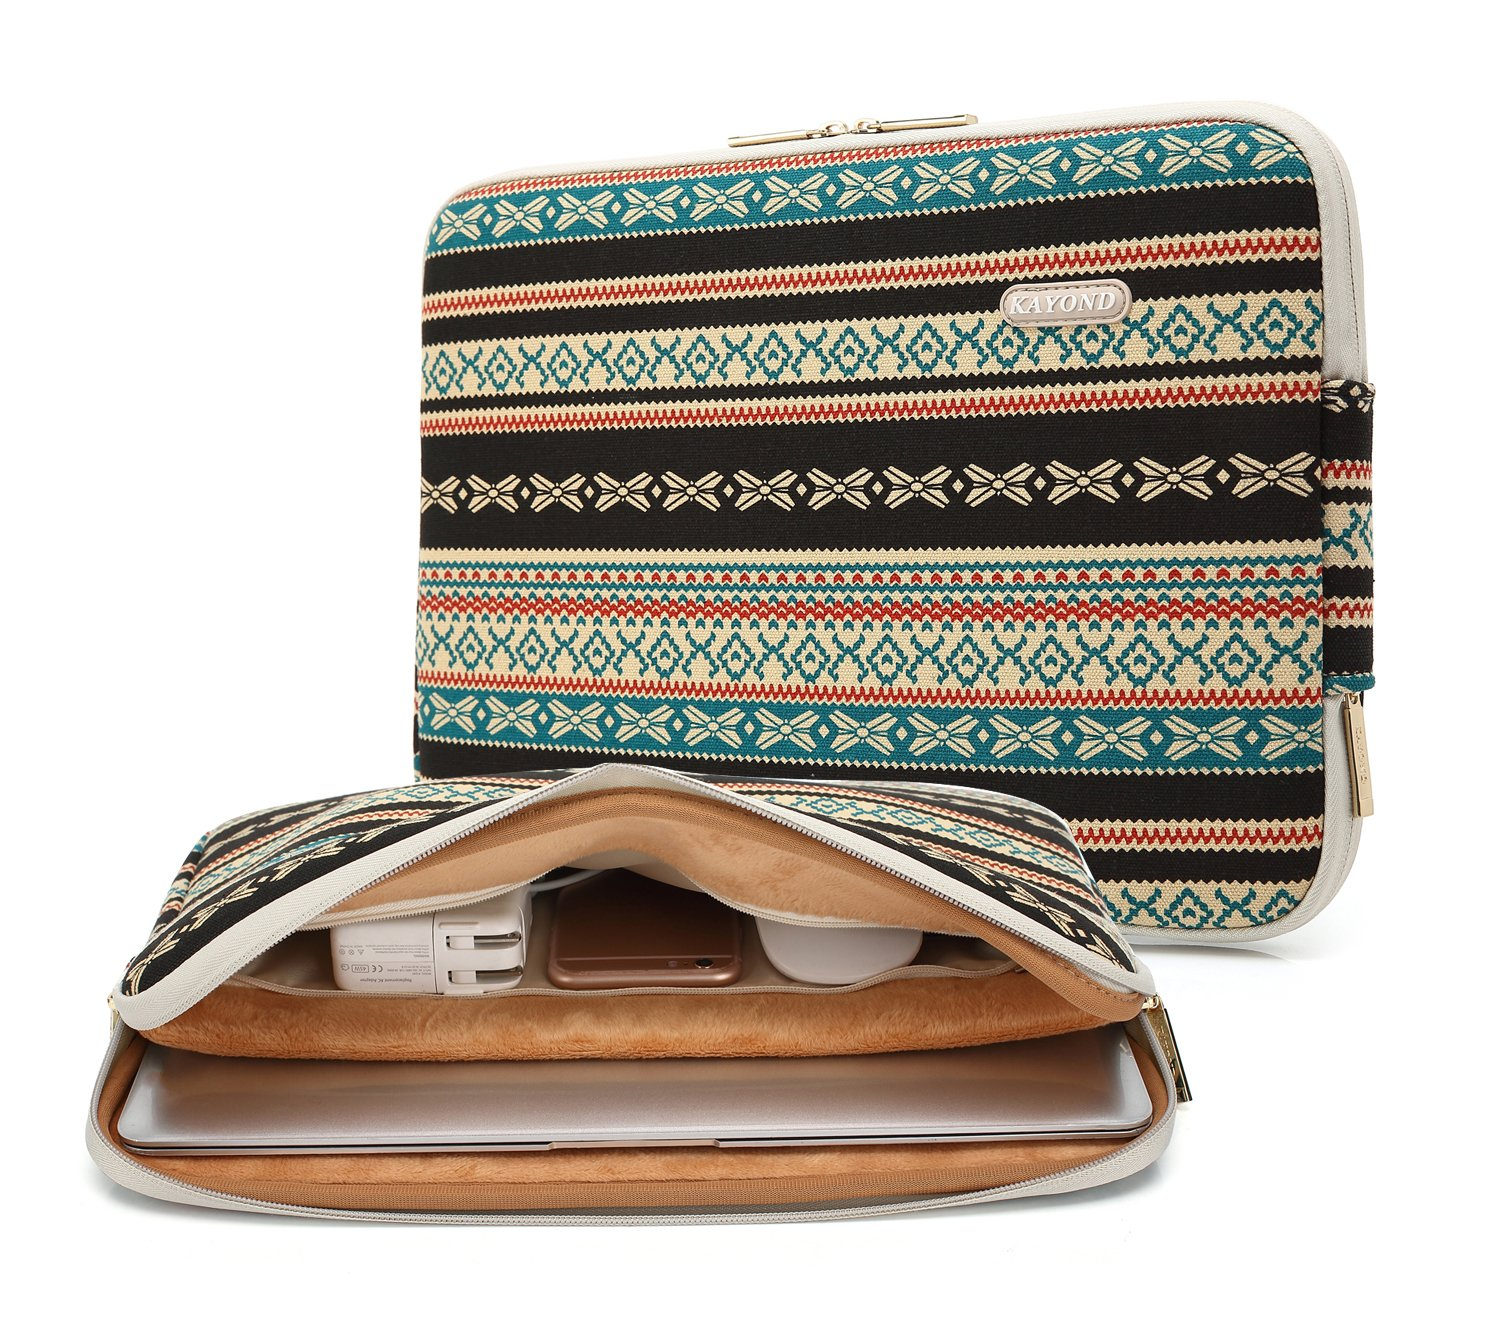 Kayond Canvas Water-Resistant 13 inch Laptop Sleeve -13 inch 13.3 inch Laptop case,12.9 inch Tablet Case Compatible MacBook(13-13.3 inches, New Bohemian) by kayond